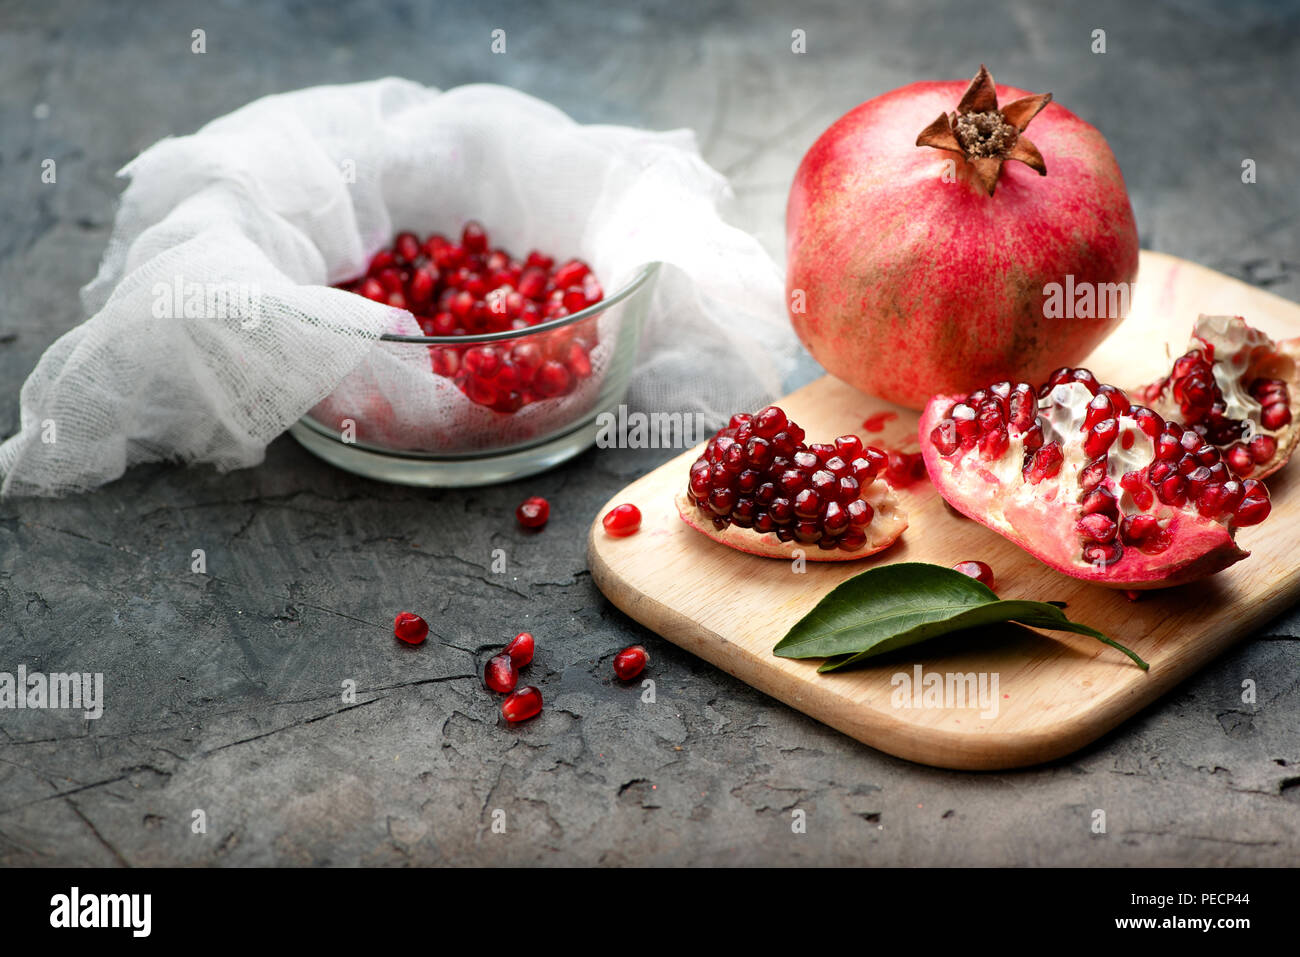 Pomegranate fruits with grains and leaves on the table. Make juice. - Stock Image